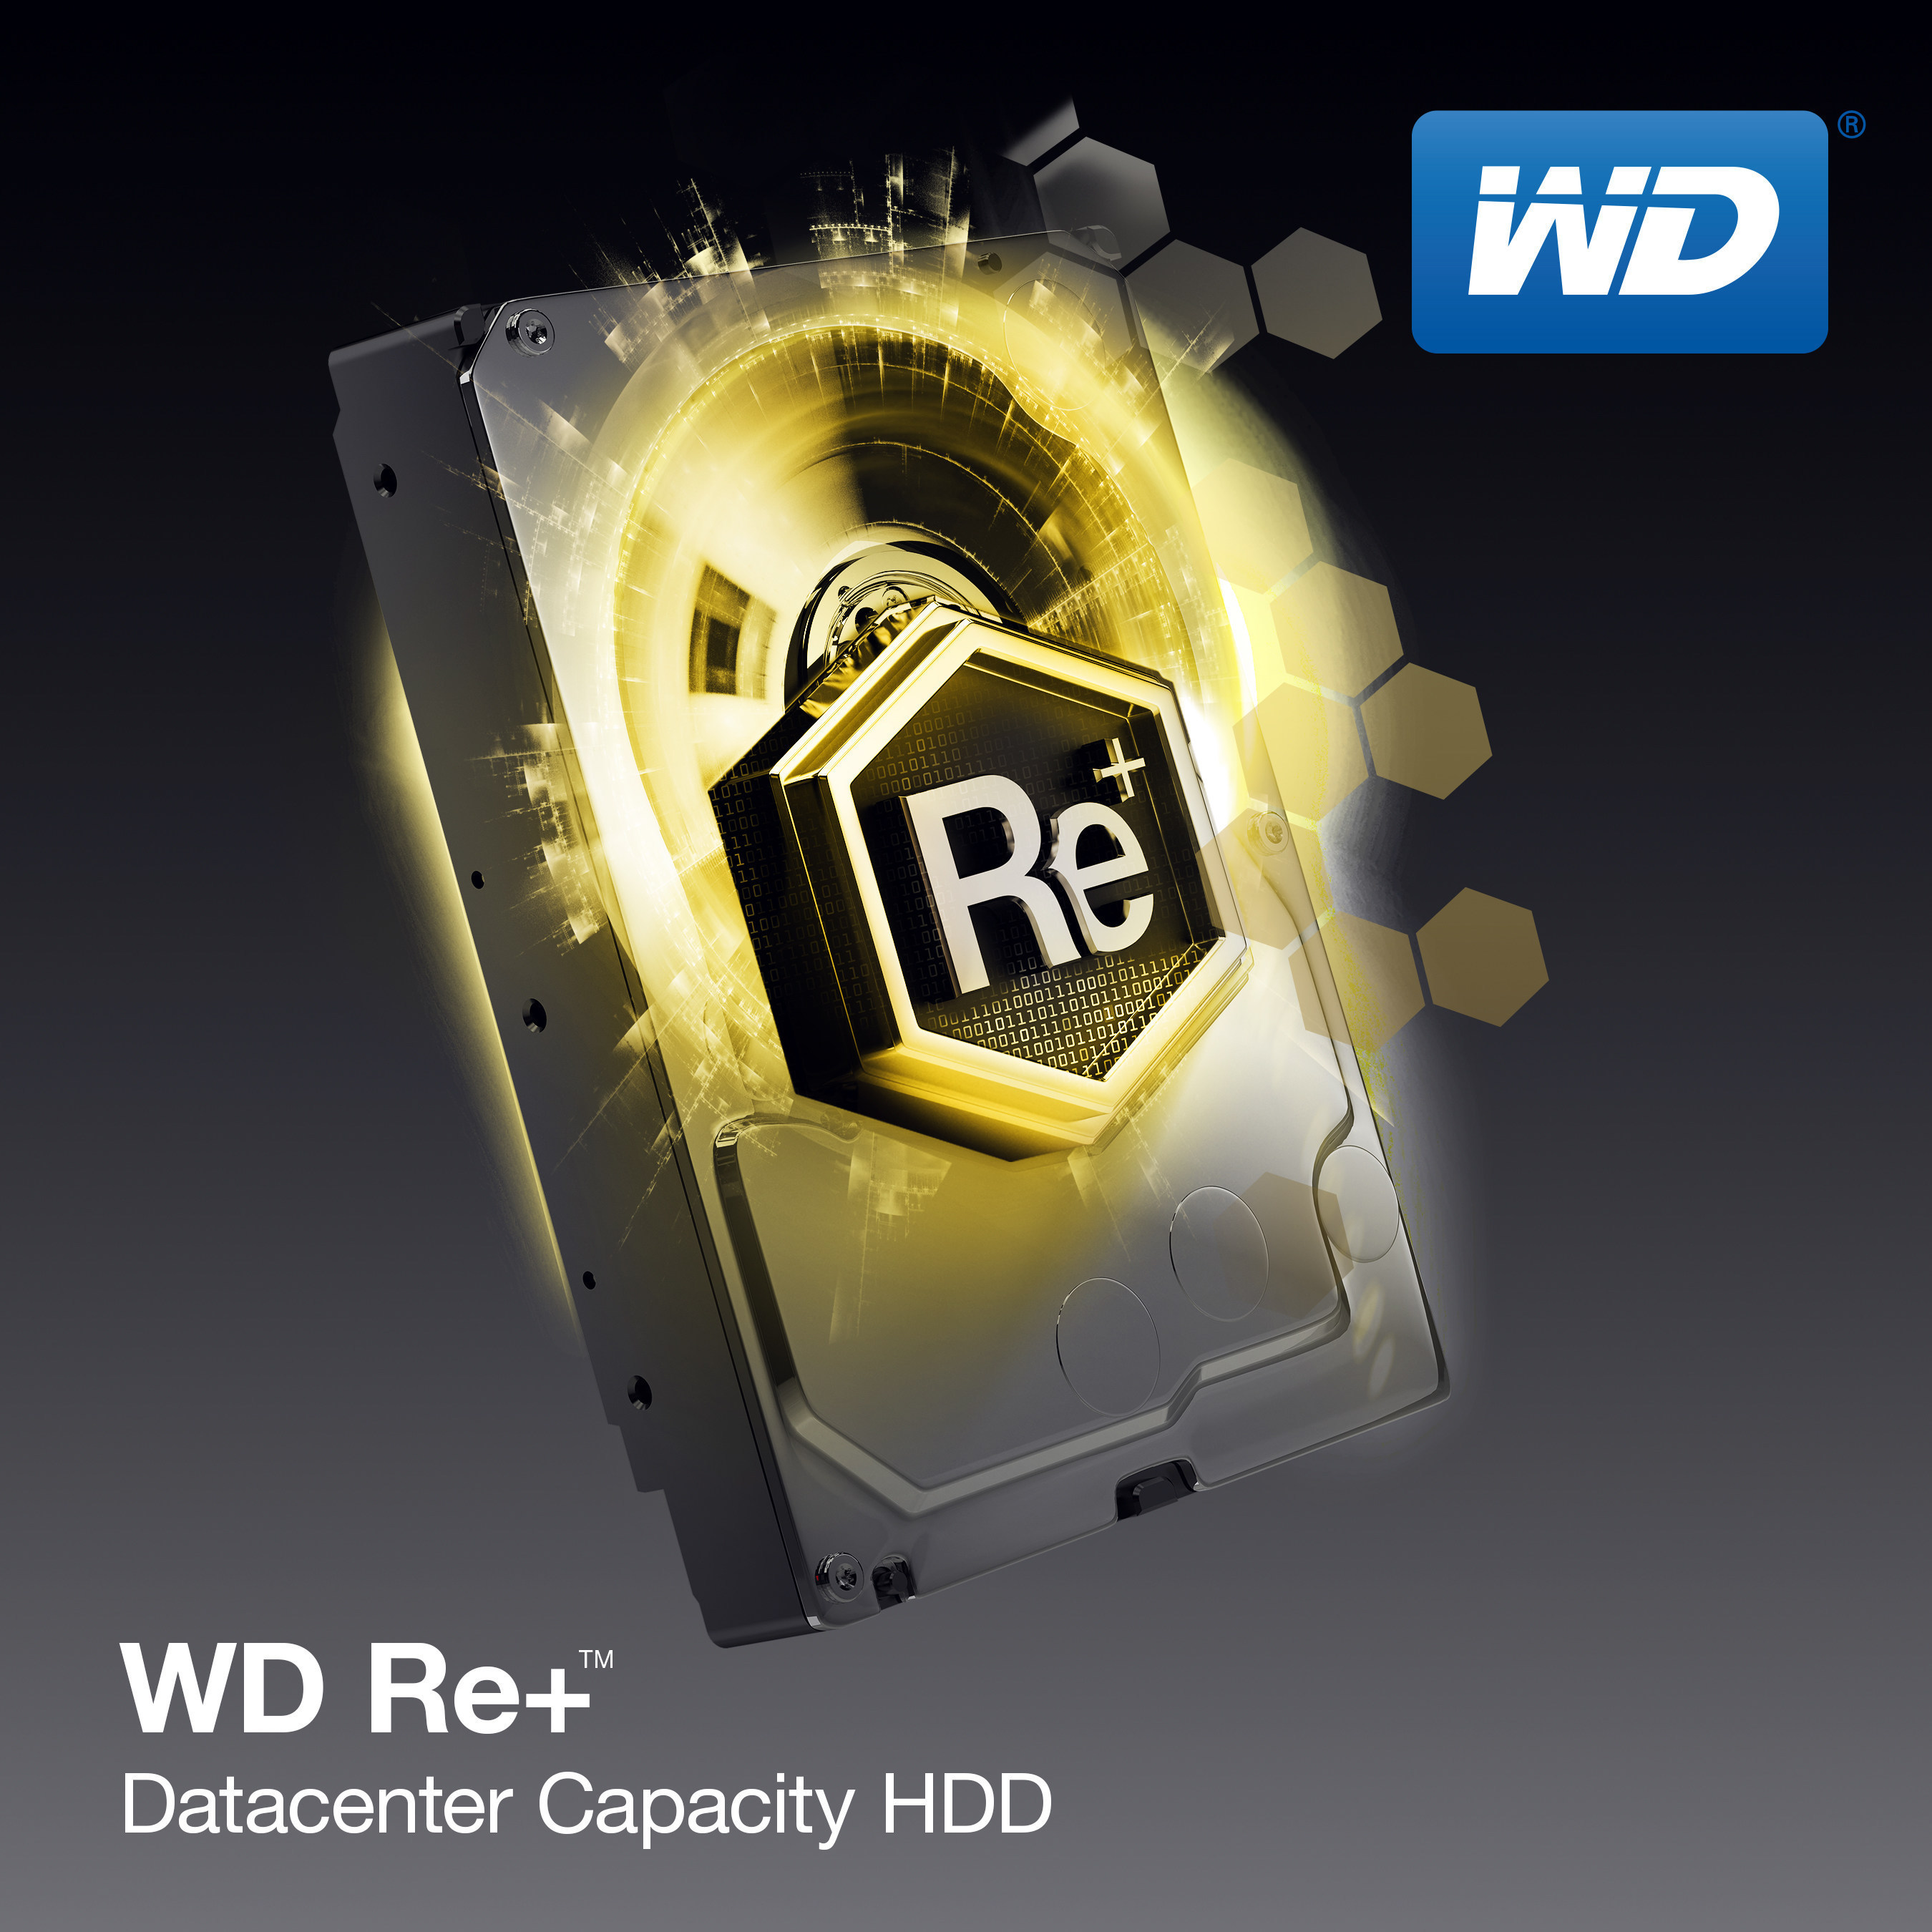 WD(R) Delivers World's Most Power-Efficient High-Capacity 3.5-Inch HDD For Modern Datacenters